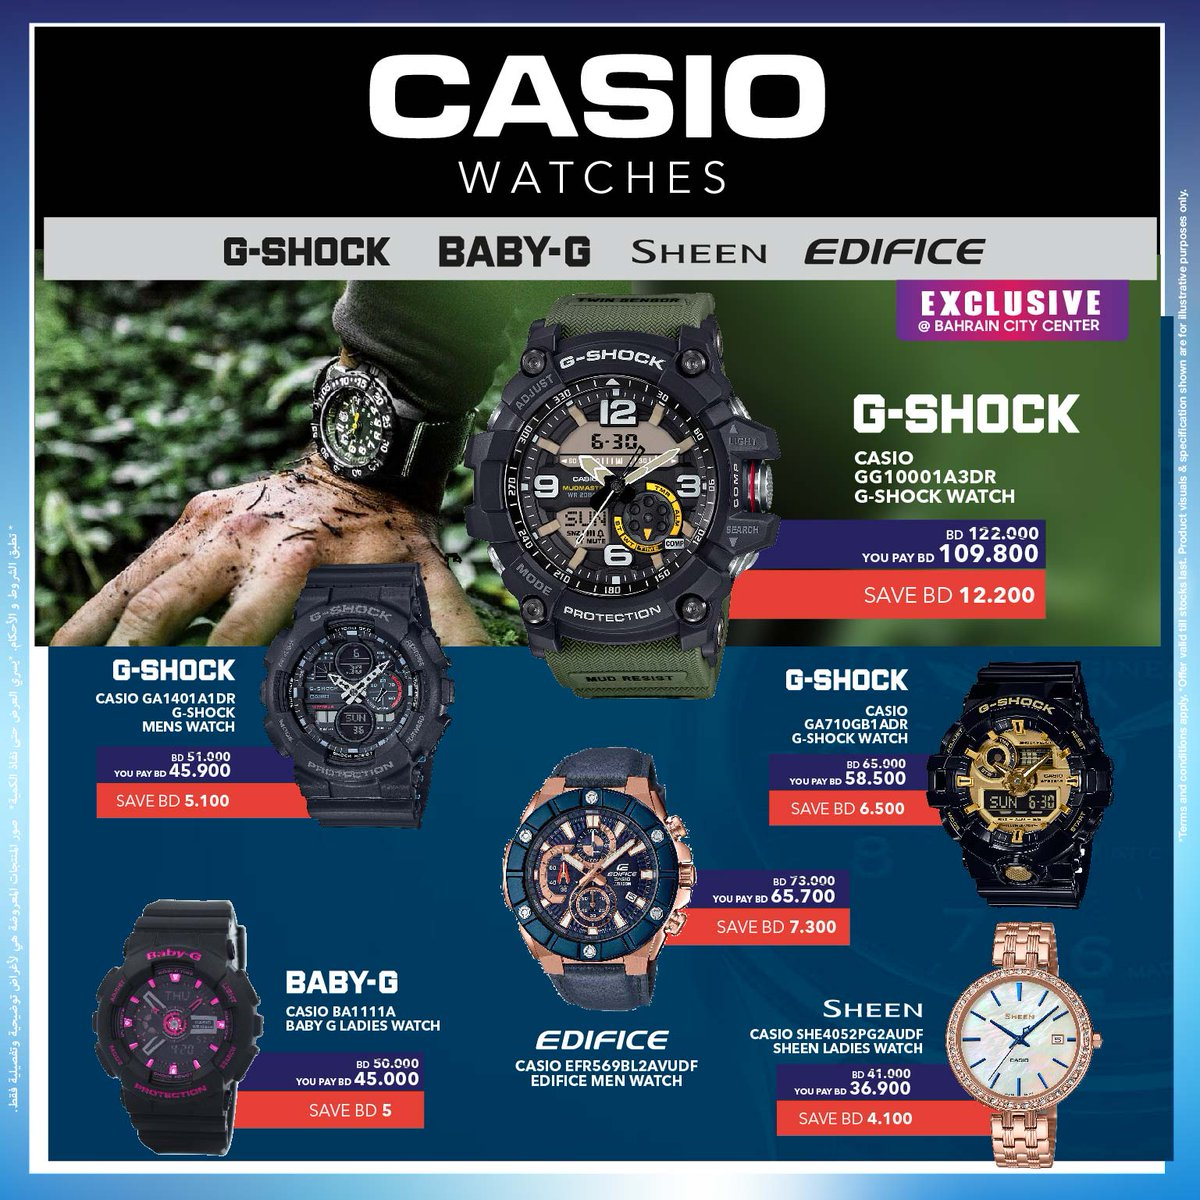 Want to buy Genuine G-SHOCK watch ? Now Available CASIO watches @ Sharaf DG Bahrain    Cooling Carnival !!!  Shop @ http://bahrain.sharafdg.com  Promo: 6th till 25th August 2020 / Limited Stocks* #bahrain #bahrain_offers #bahrainoffers #casio #gshockwatch #edificepic.twitter.com/CUmgSrZ5qA